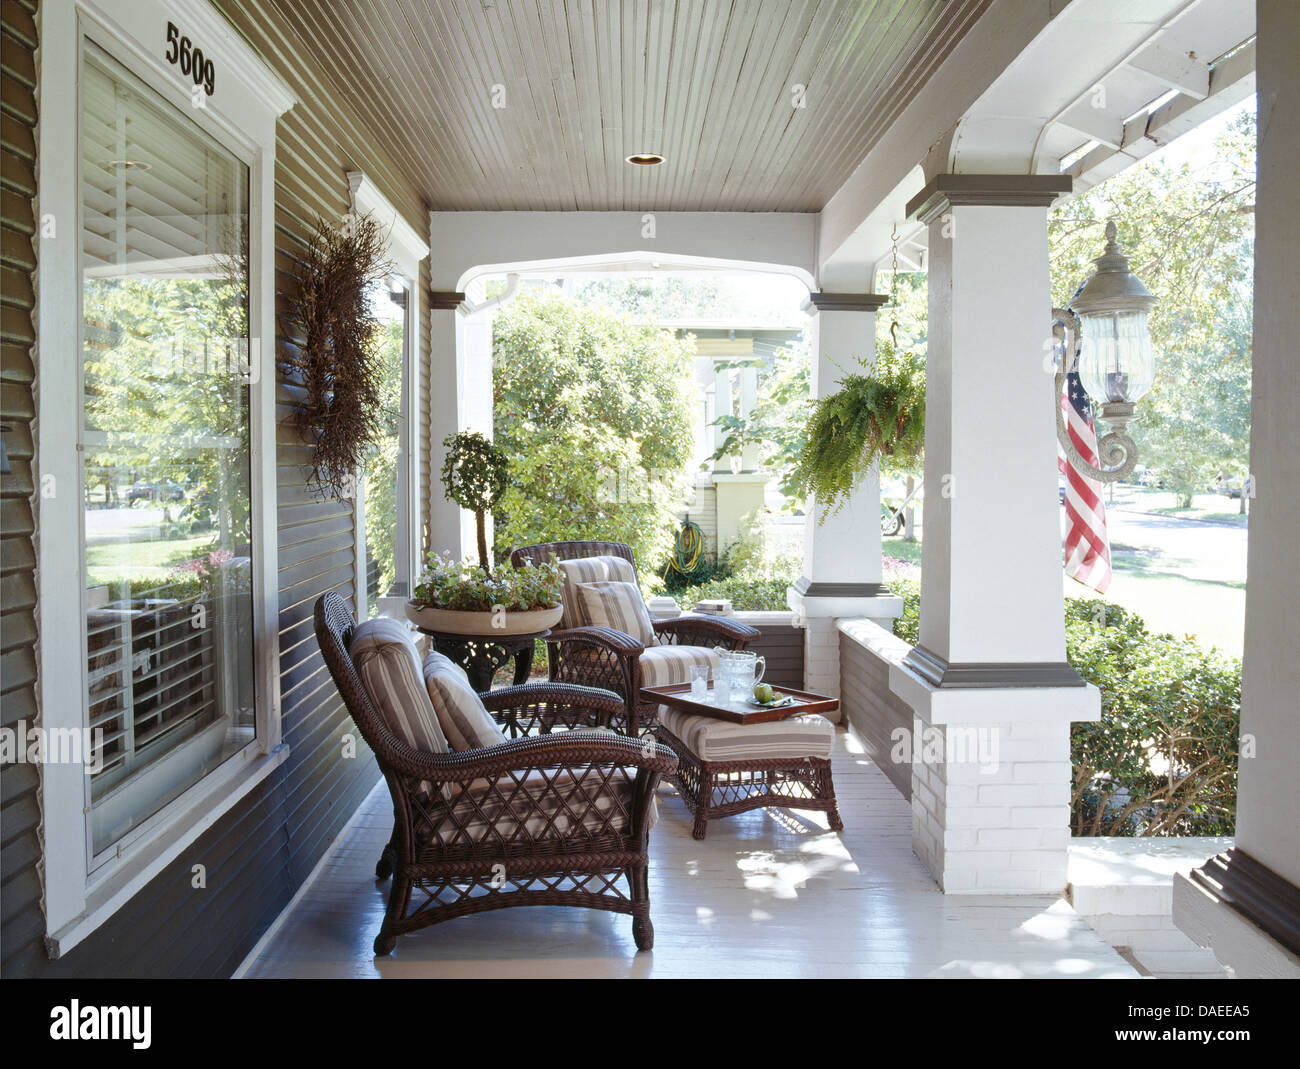 Wicker Armchairs On Veranda Of American Colonial Style